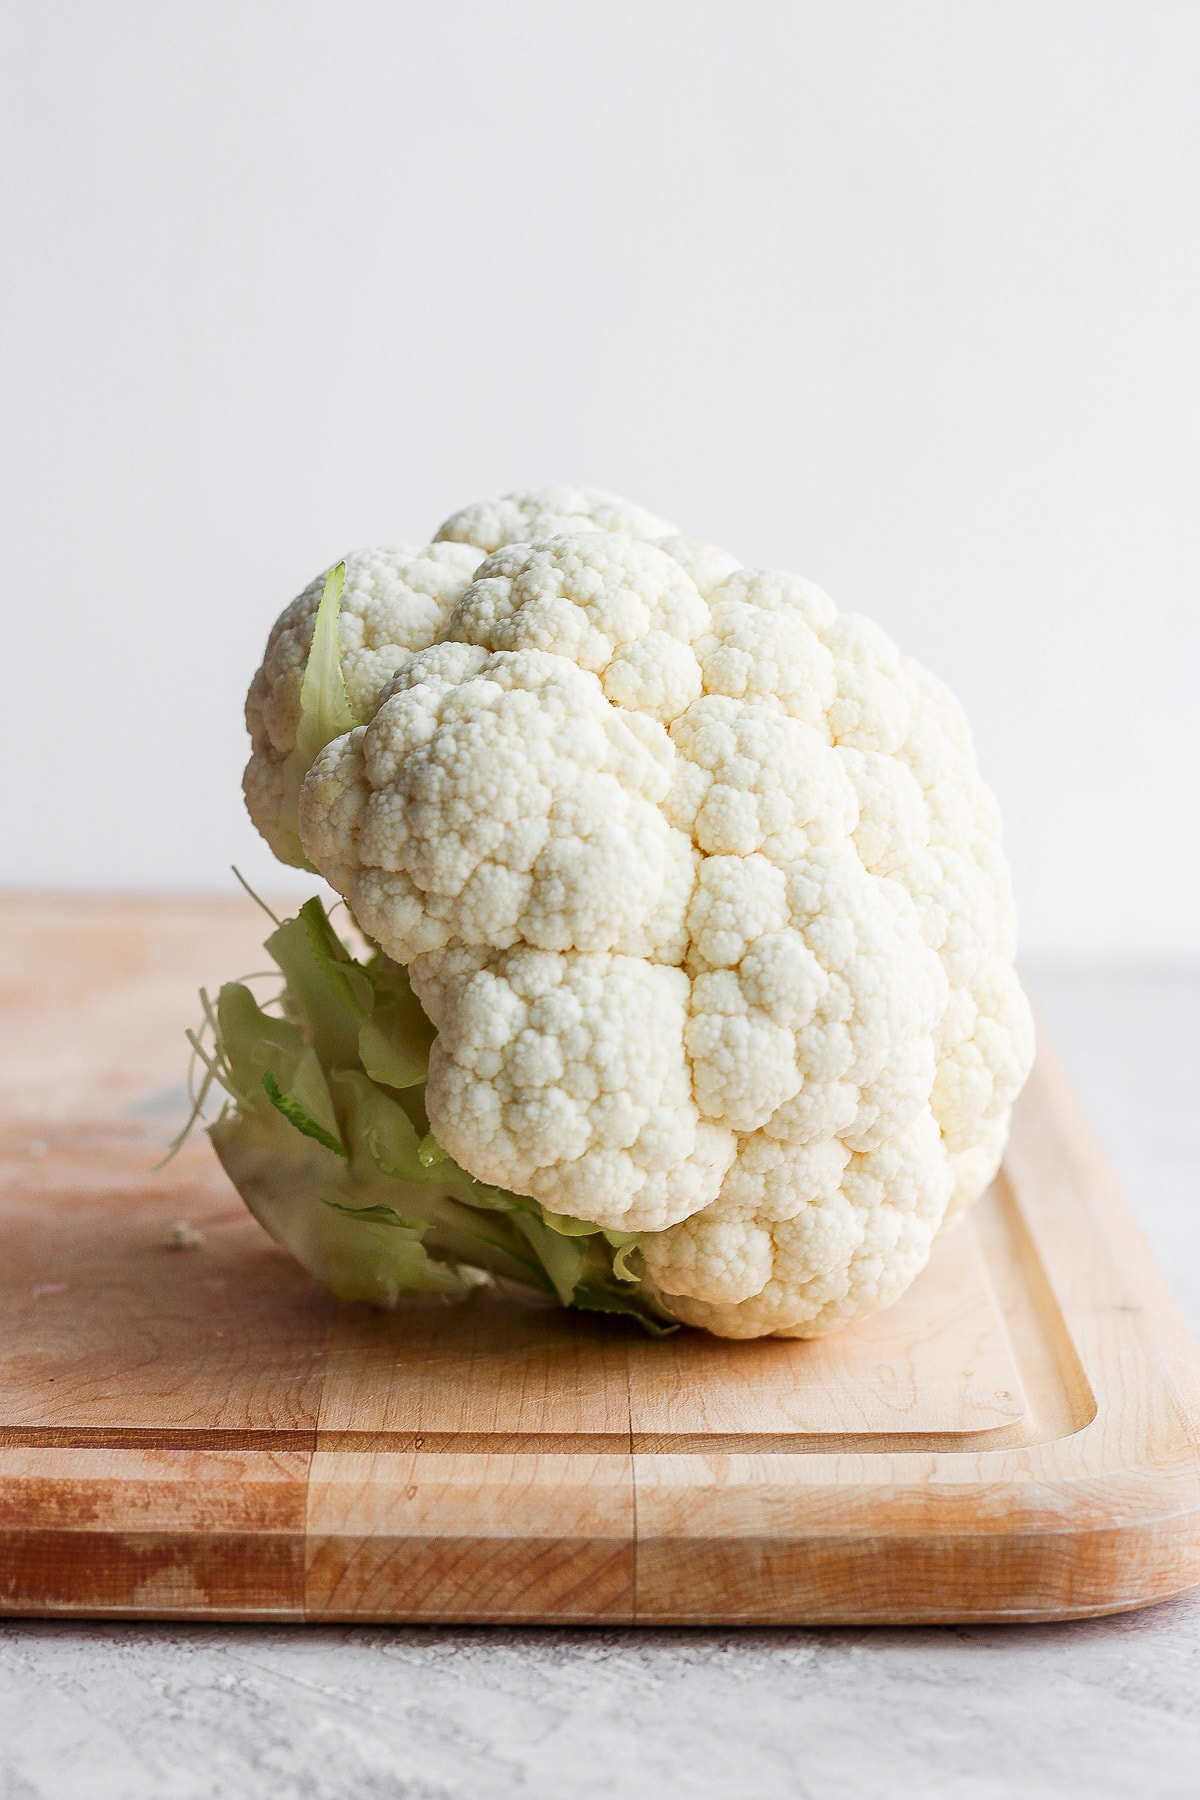 Head of cauliflower with leaves removed.